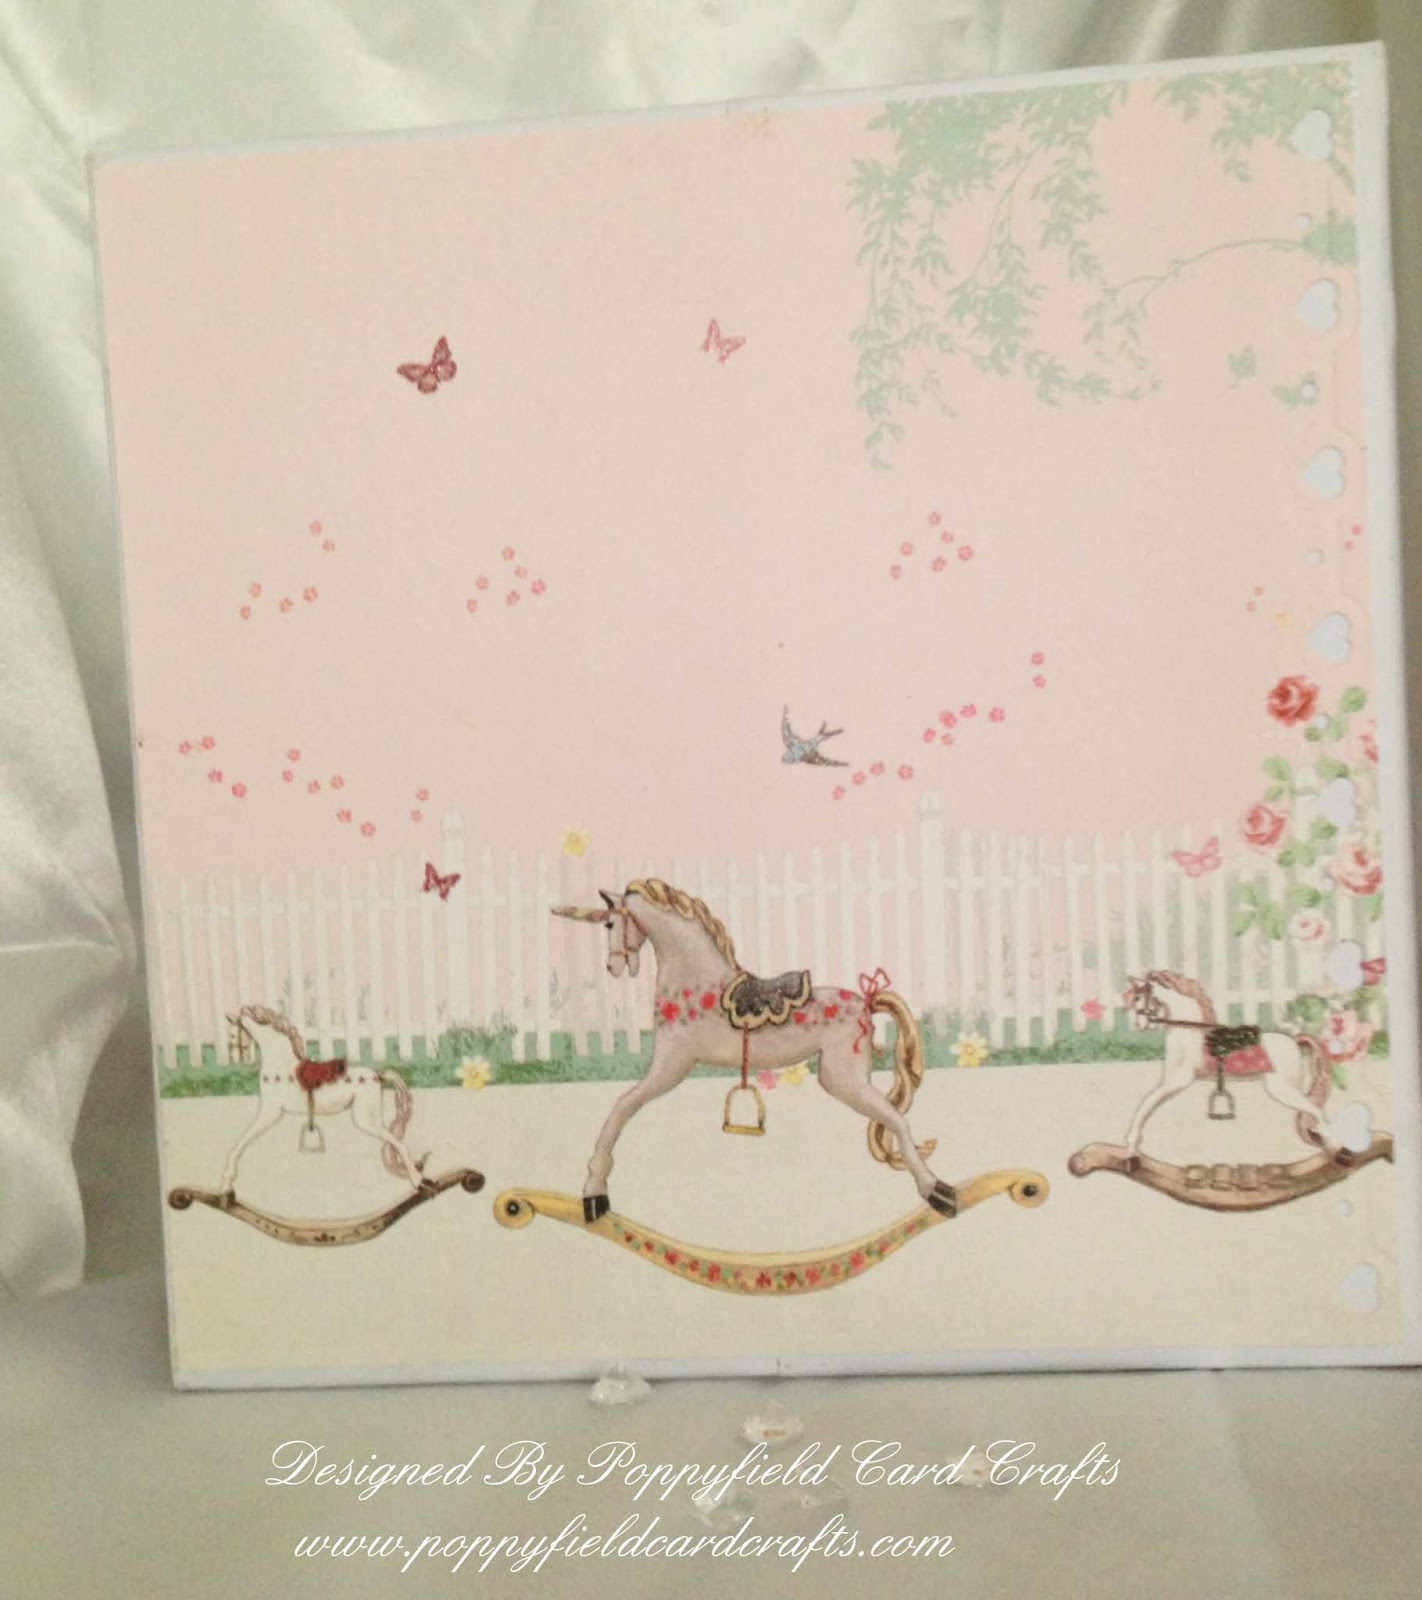 Poppyfield Card Crafts : WHEN CRAFT GOES WRONG!